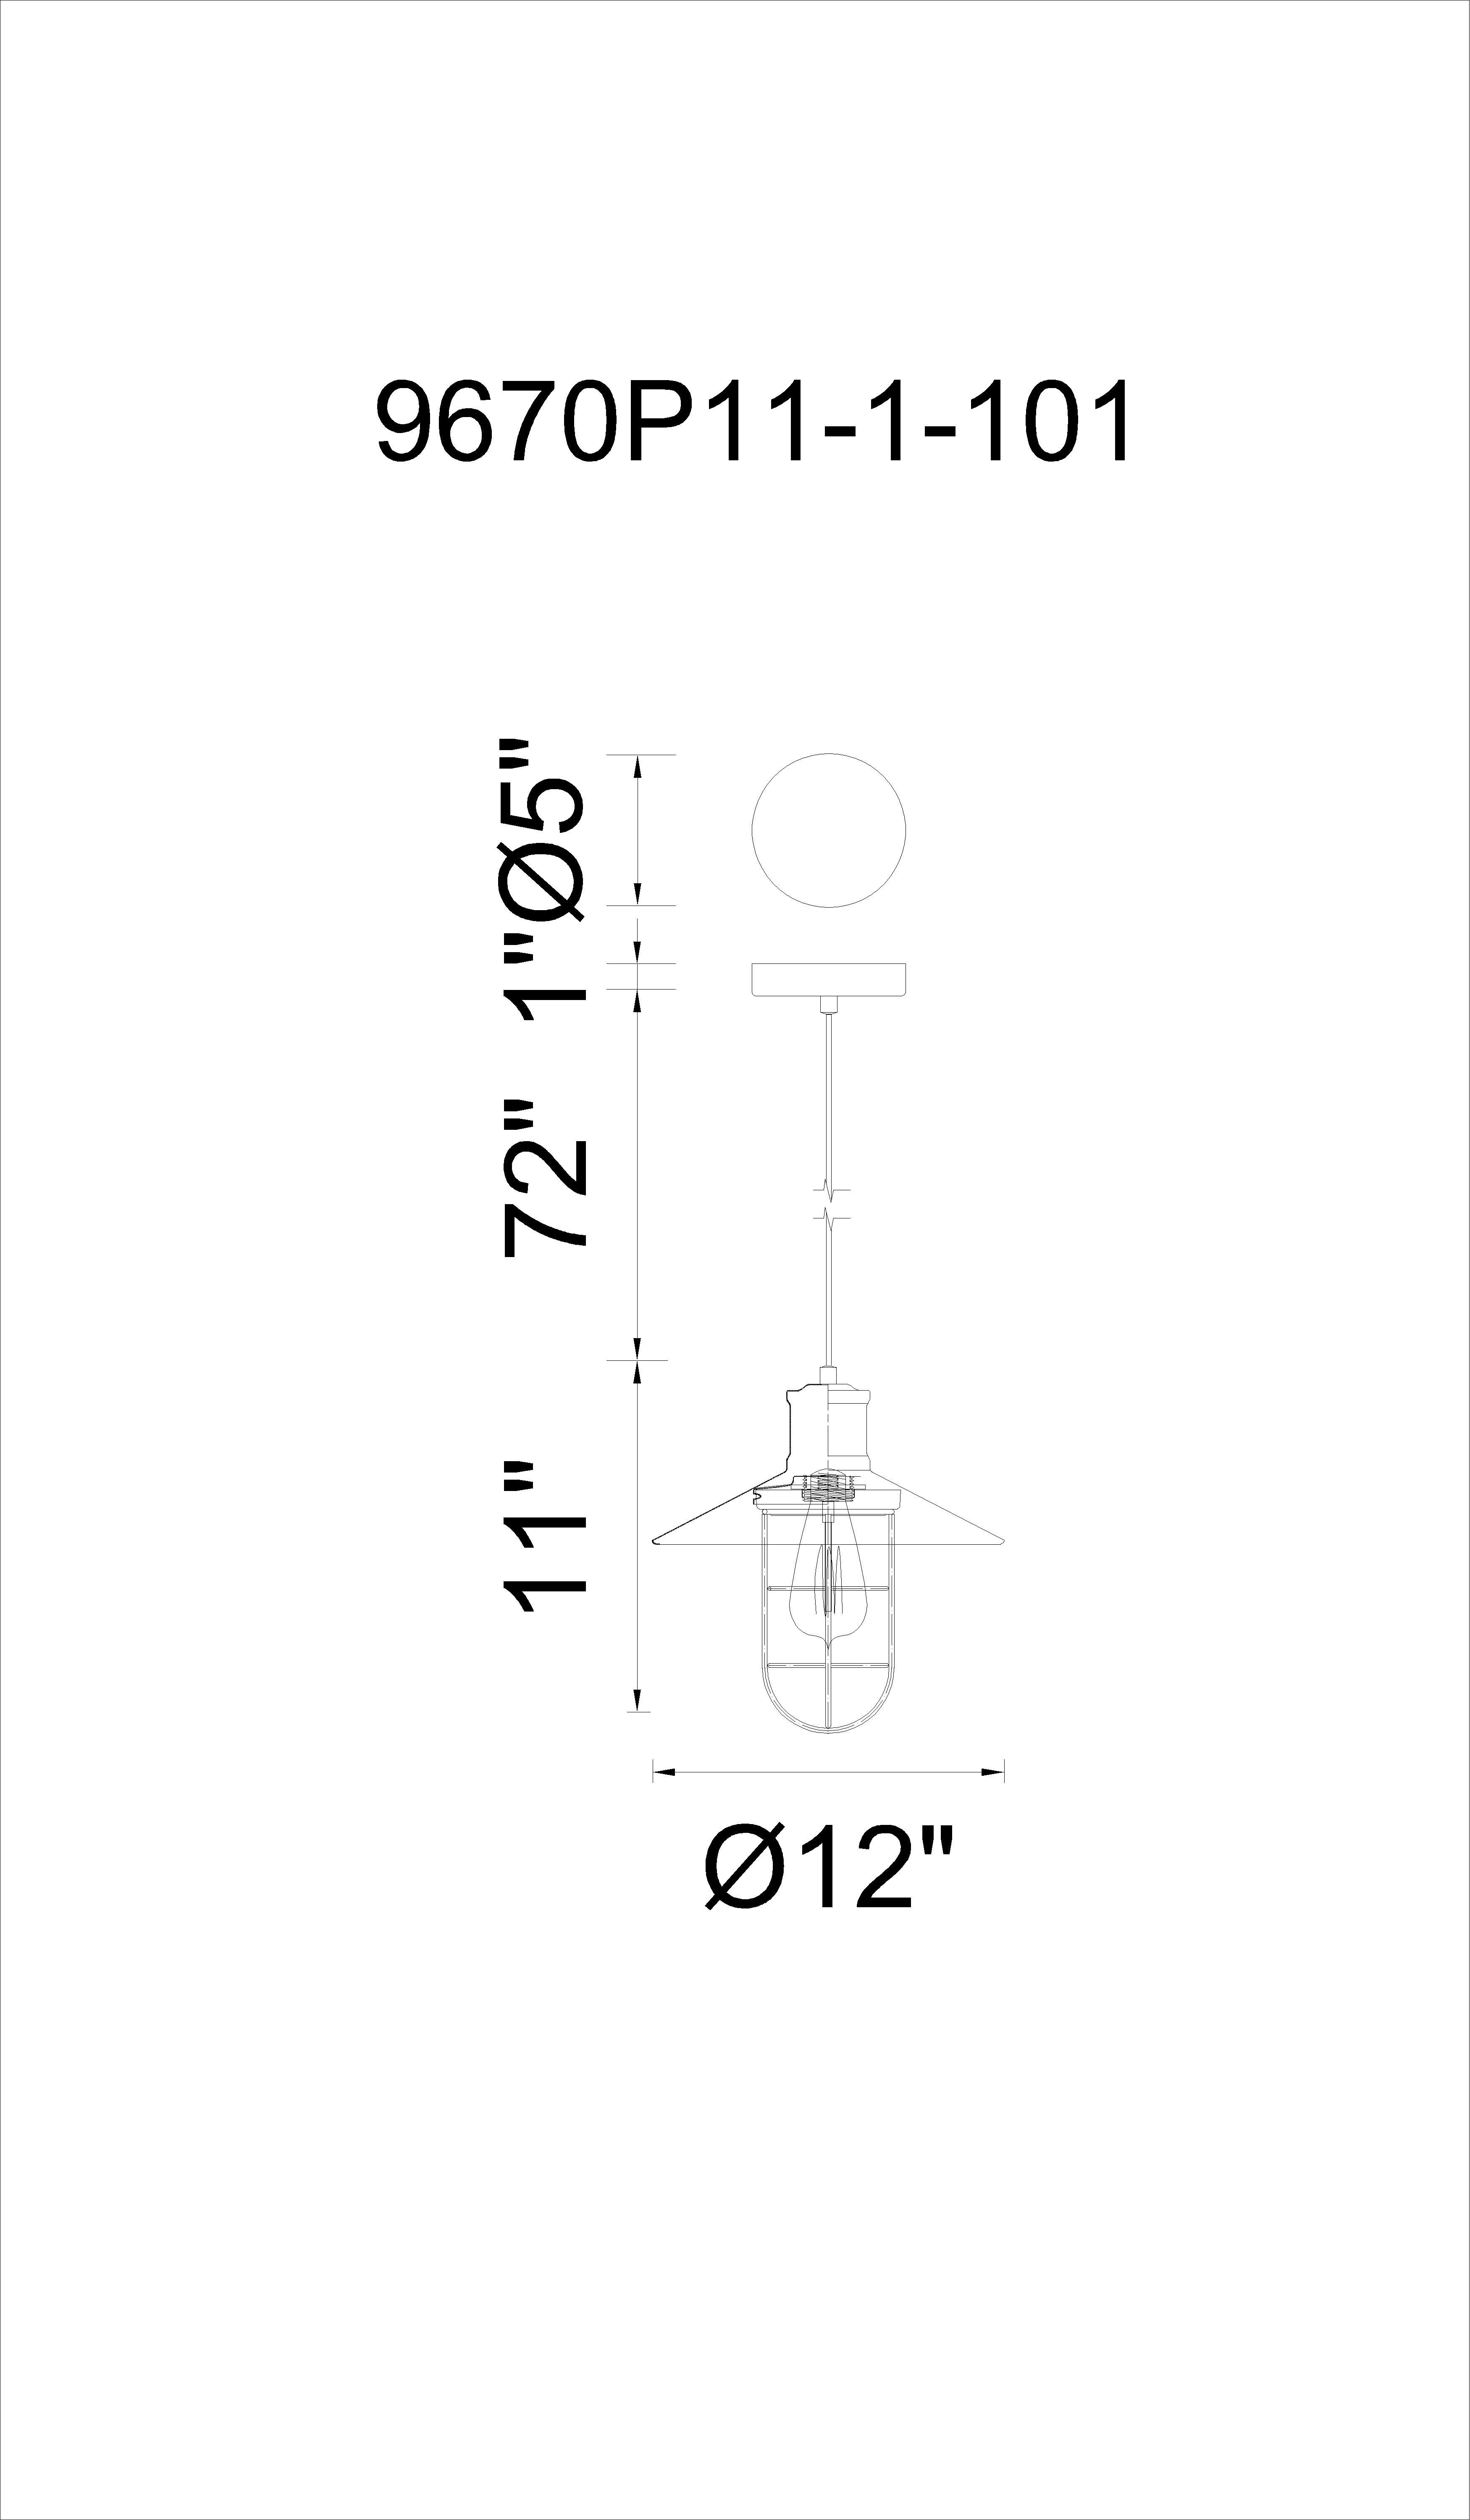 CWI Lighting Brave 1 Light Down Pendant With Black Finish Model: 9670P11-1-101 Line Drawing